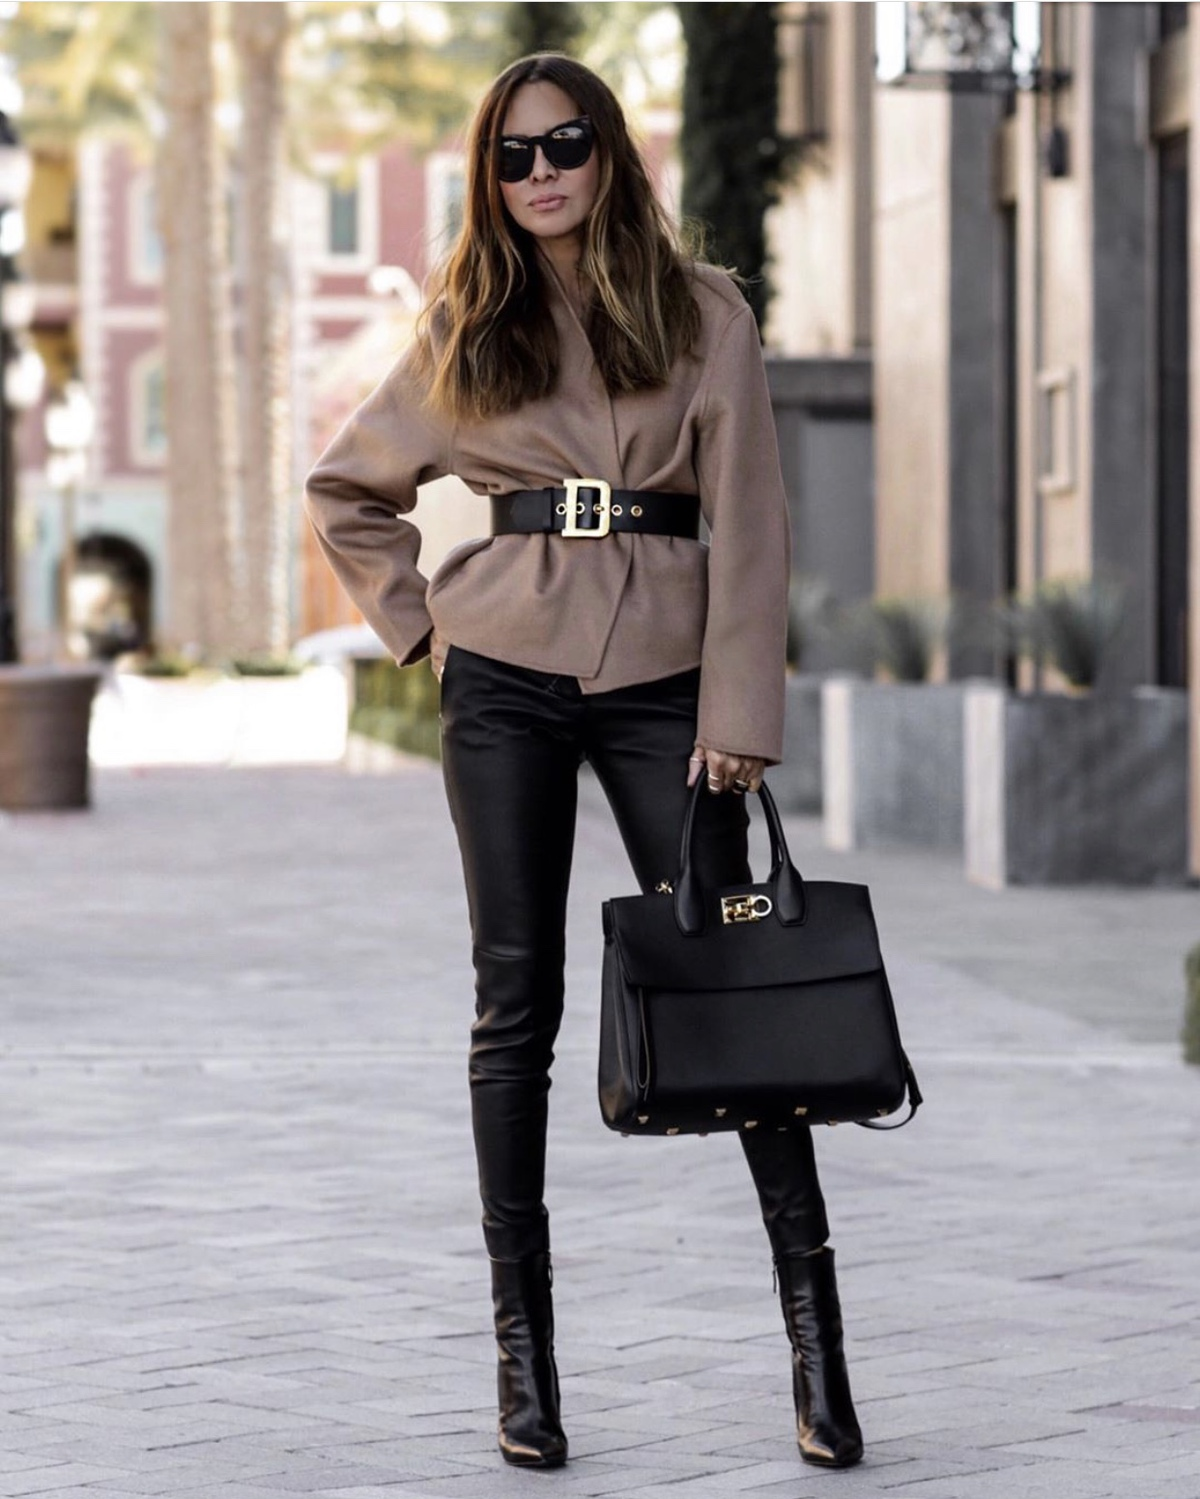 fashion blogger lolario style dresses up in stylish thanksgiving outfits featuring a belted jacket with leather leggings and a salvatore ferragamo tote | lolariostyle.com